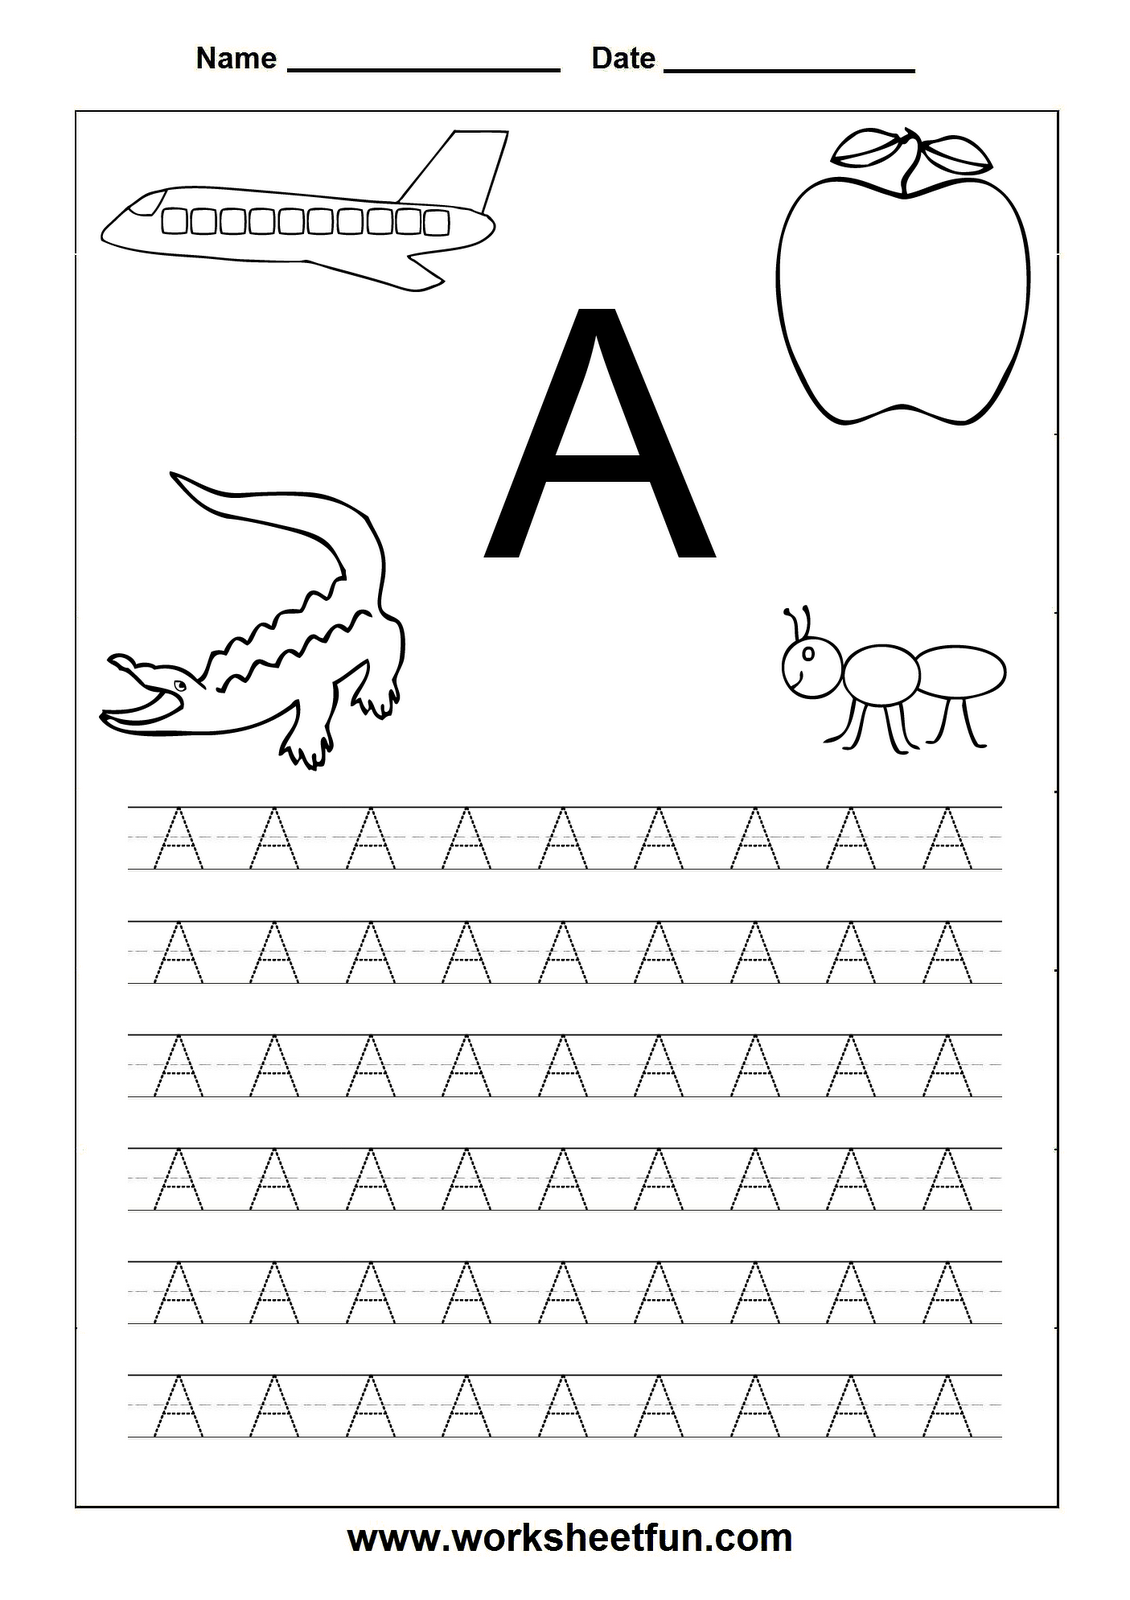 Worksheets Abc Tracing Worksheets a z capital letter tracing worksheets there are plenty more on various subjects on